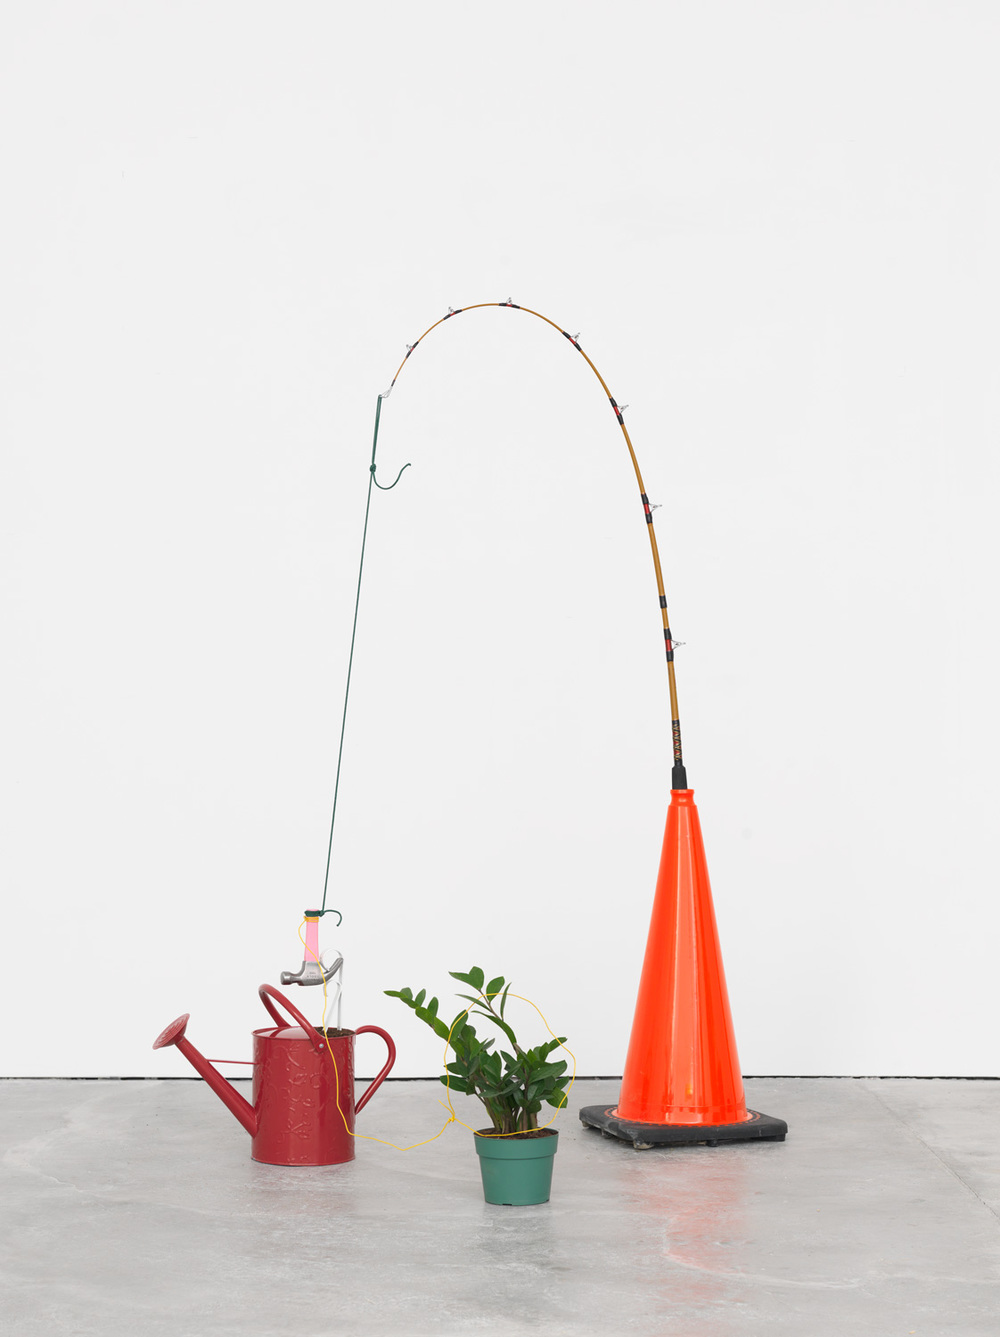 Tropical Tease, 2015 Traffic cone, fishing pole, rope, hammer, shelf bracket, soil, watering can, wire, and potted plant. 67 x 44 x 44 inches